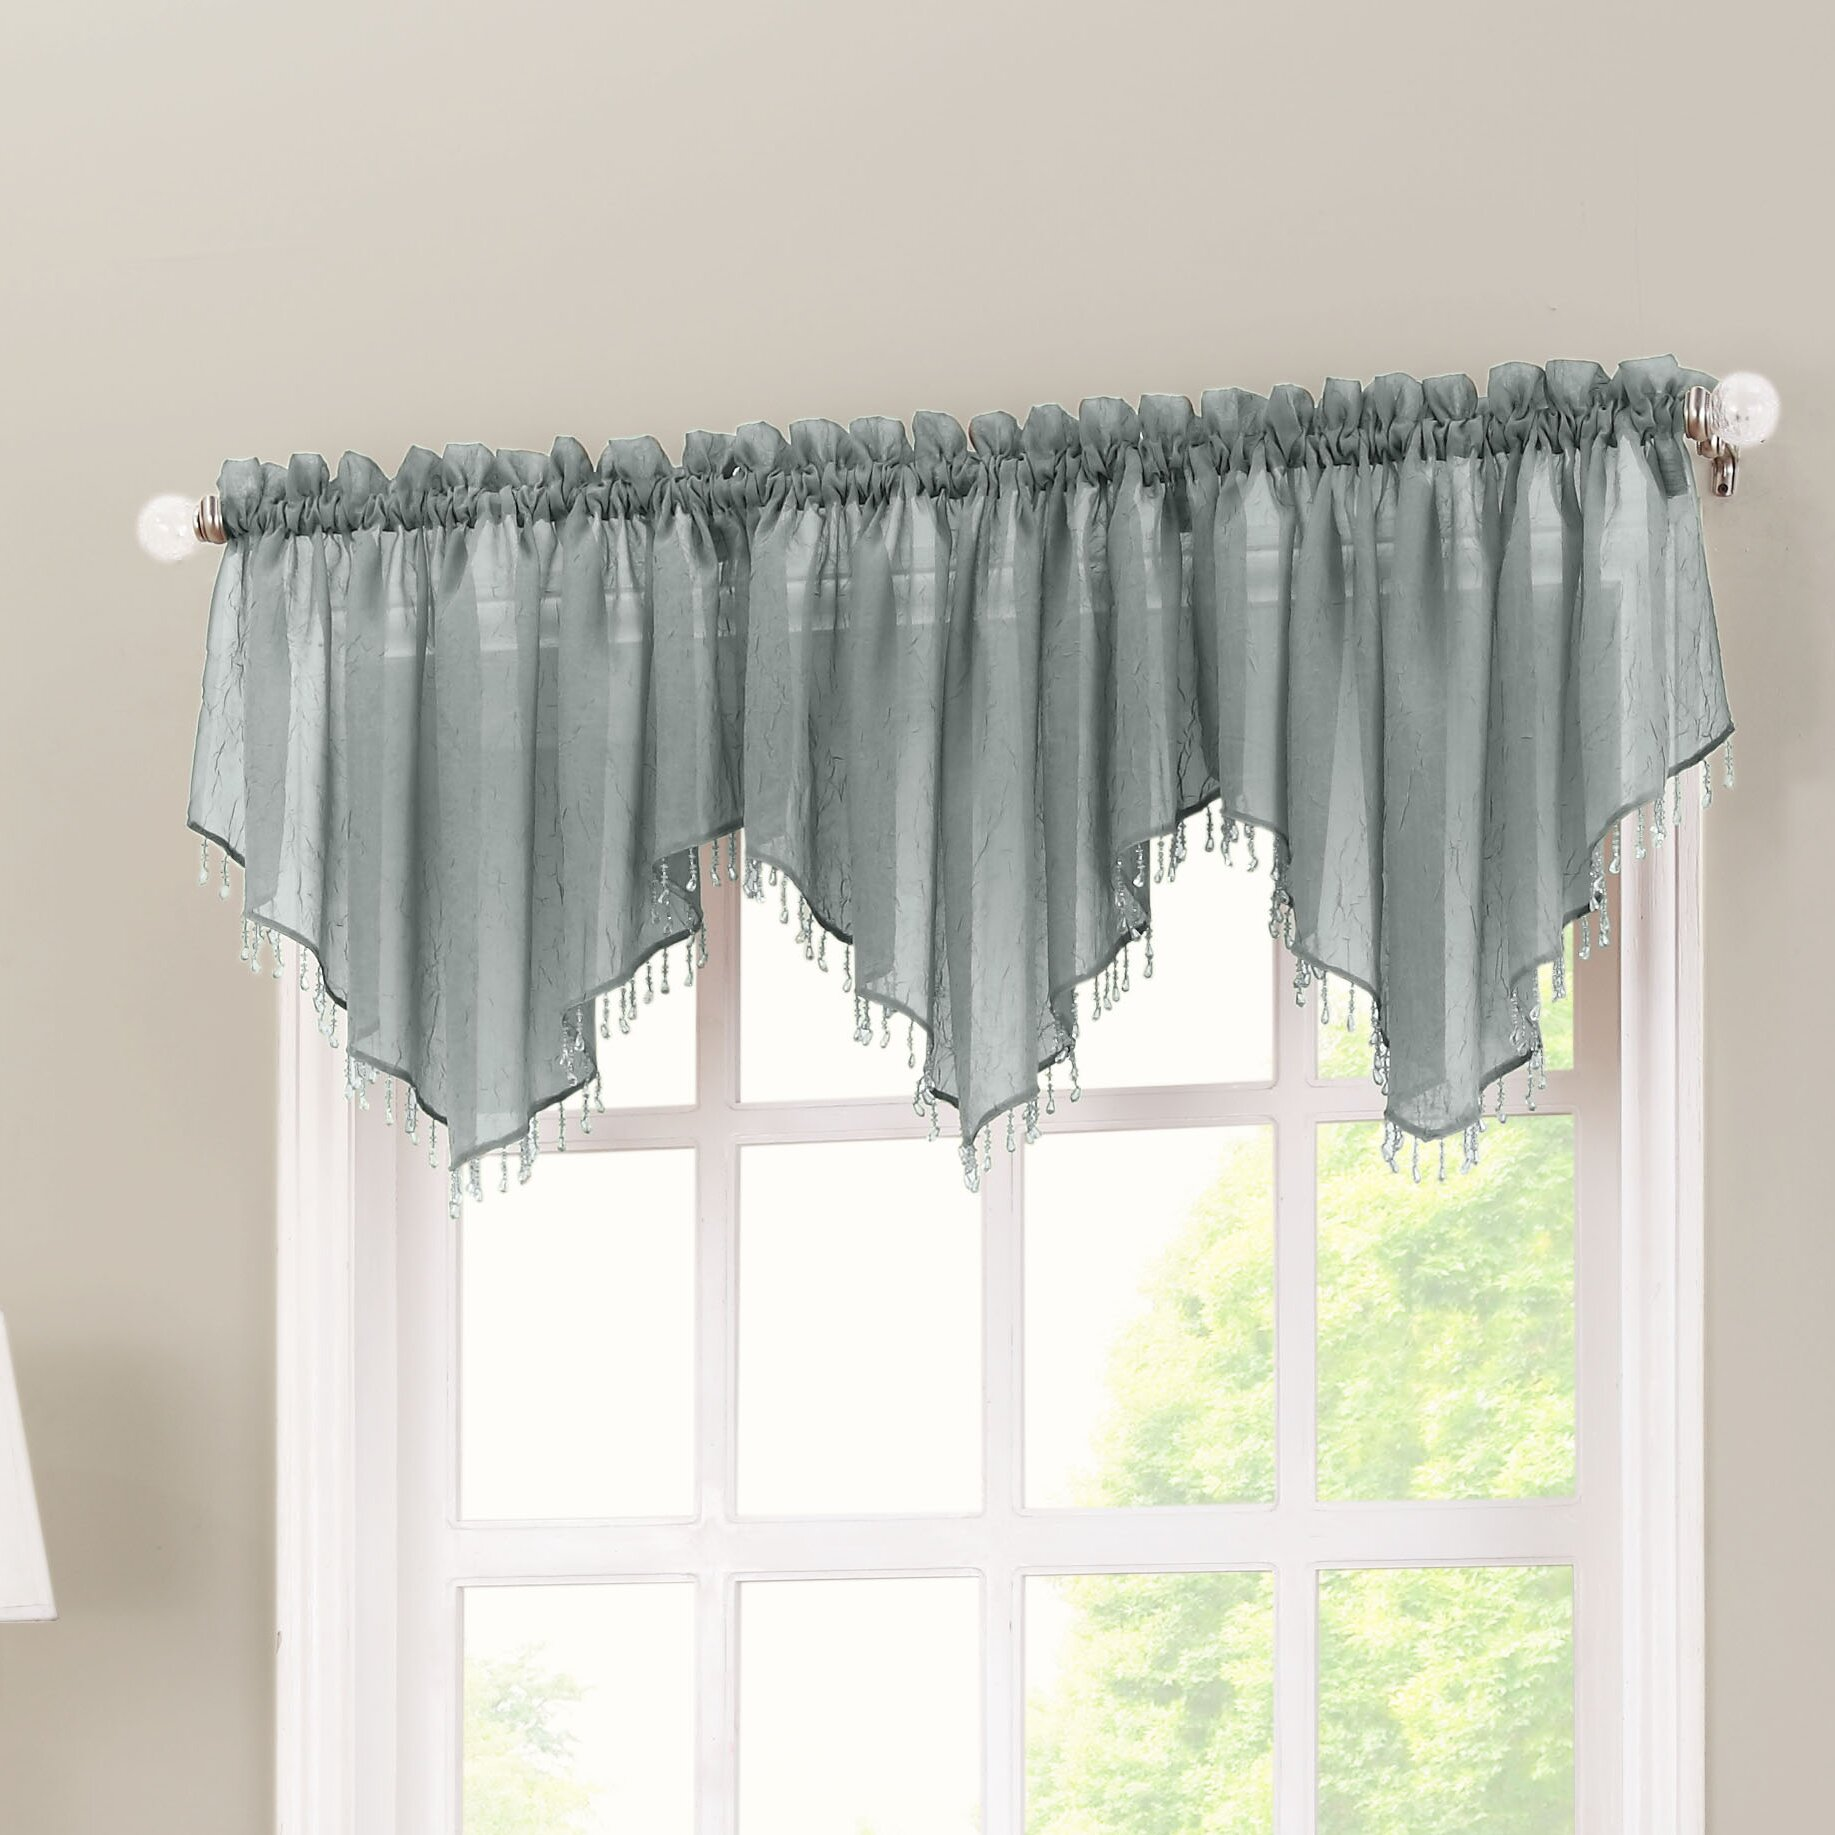 No 918 crushed sheer voile 51 curtain valance reviews for Window valance